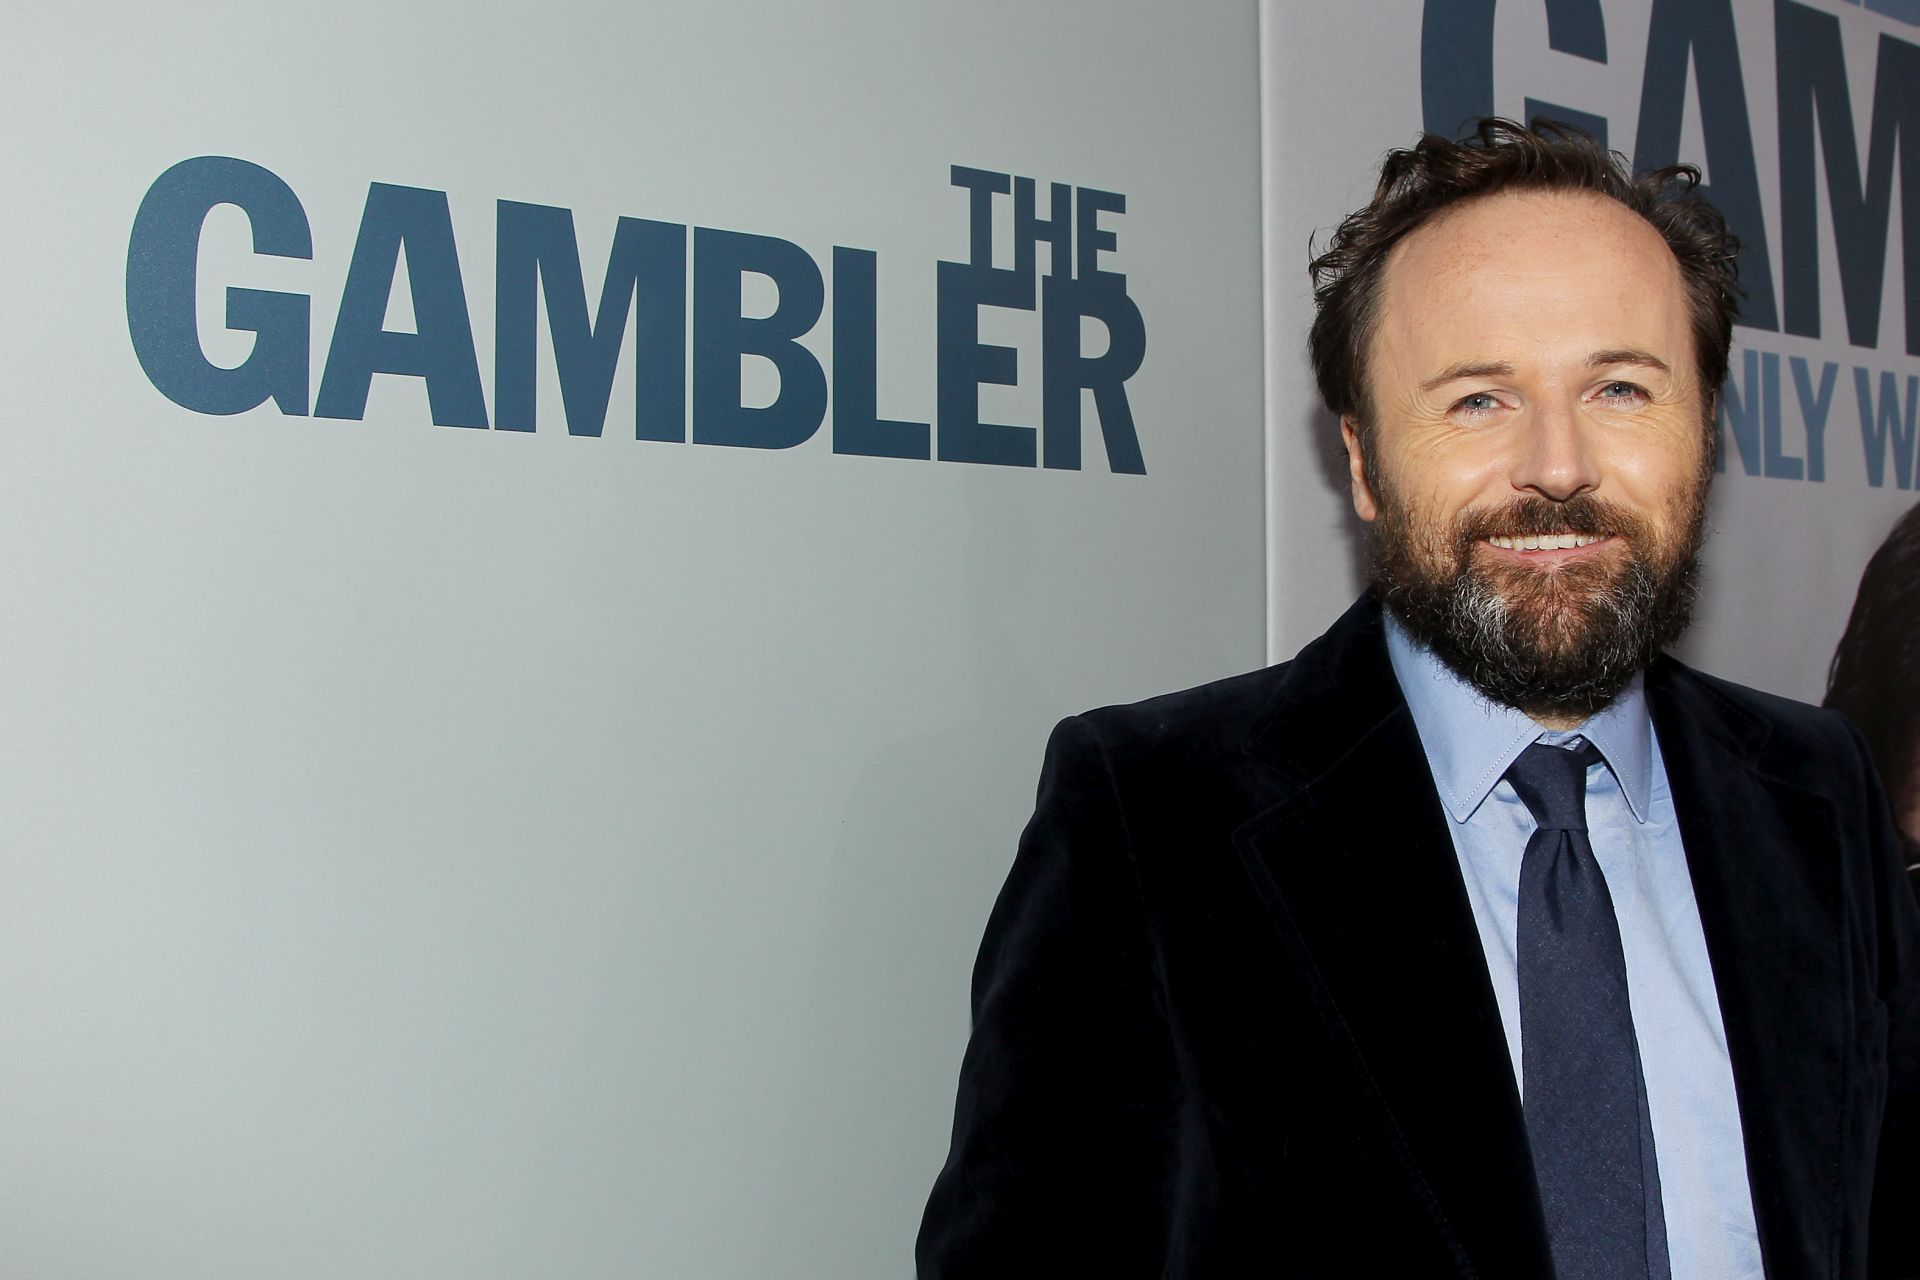 "- New York, NY - 12/10/14 -Paramount Pictures Pictures Presents The New York Premiere of The ""Gambler"" The Film stars Mark Wahberg, Brie Larson and Michael Kenneth Williams . The Gambler opens nationwide Dec 25th. -PICTURED: Rupert Wyatt -PHOTO by: Dave Allocca/Starpix -Filename: DA_14_20290.JPG -Location: AMC Lincoln Square Startraks Photo New York, NY For licensing please call 212-414-9464 or email sales@startraksphoto.com Startraks Photo reserves the right to pursue unauthorized users of this image. If you violate our intellectual property you may be liable for actual damages, loss of income, and profits you derive from the use of this image, and where appropriate, the cost of collection and/or statutory damages."